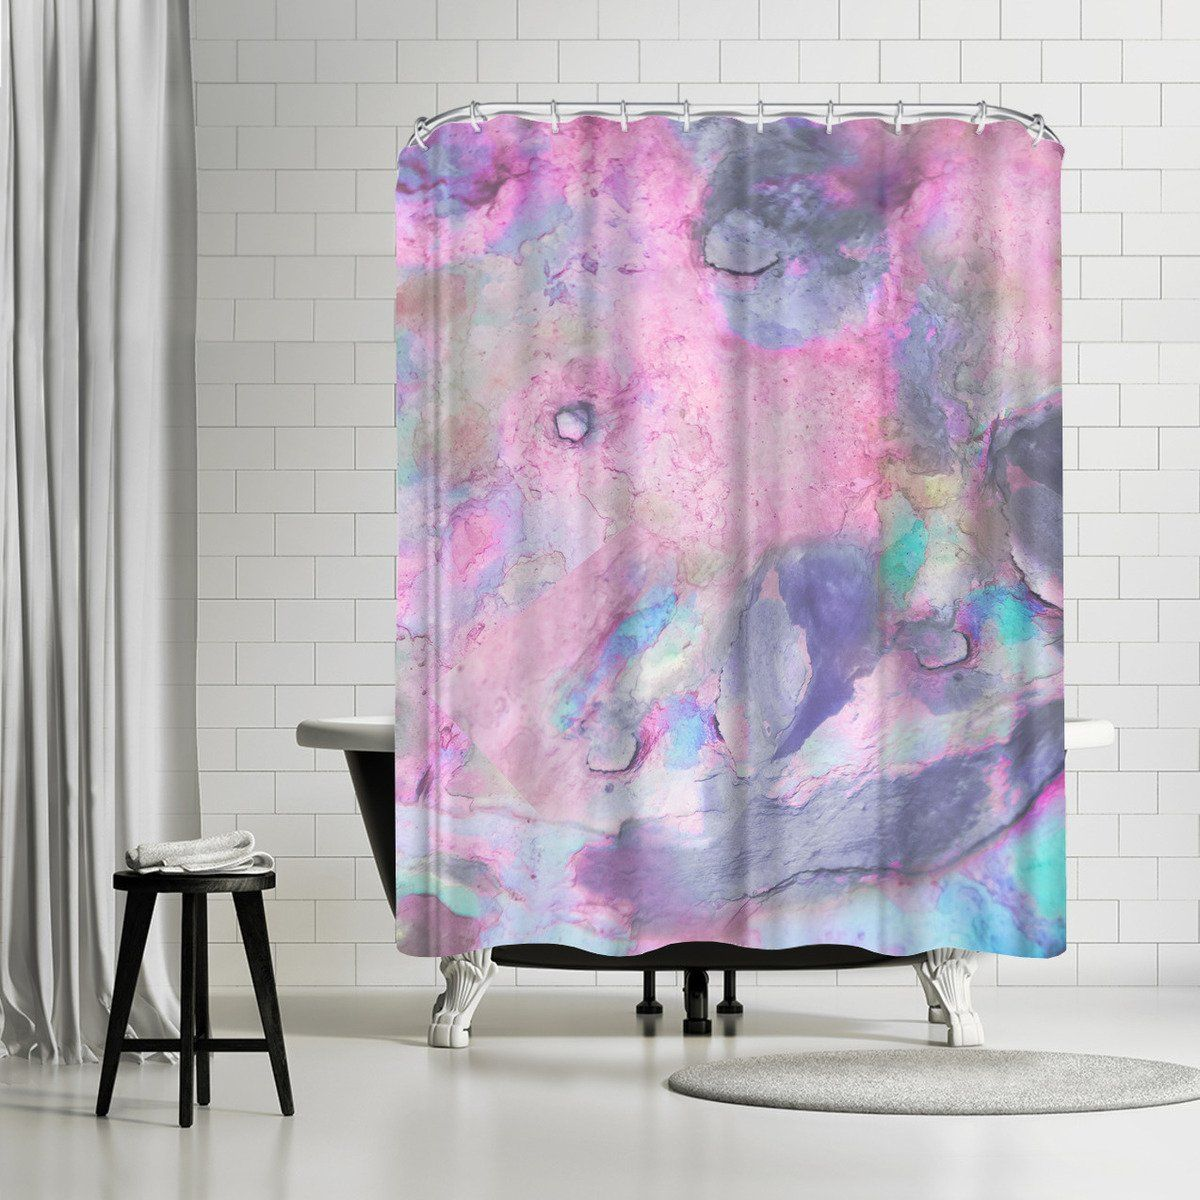 Iridescence By Emanuela Carratoni Shower Curtain Striped Shower